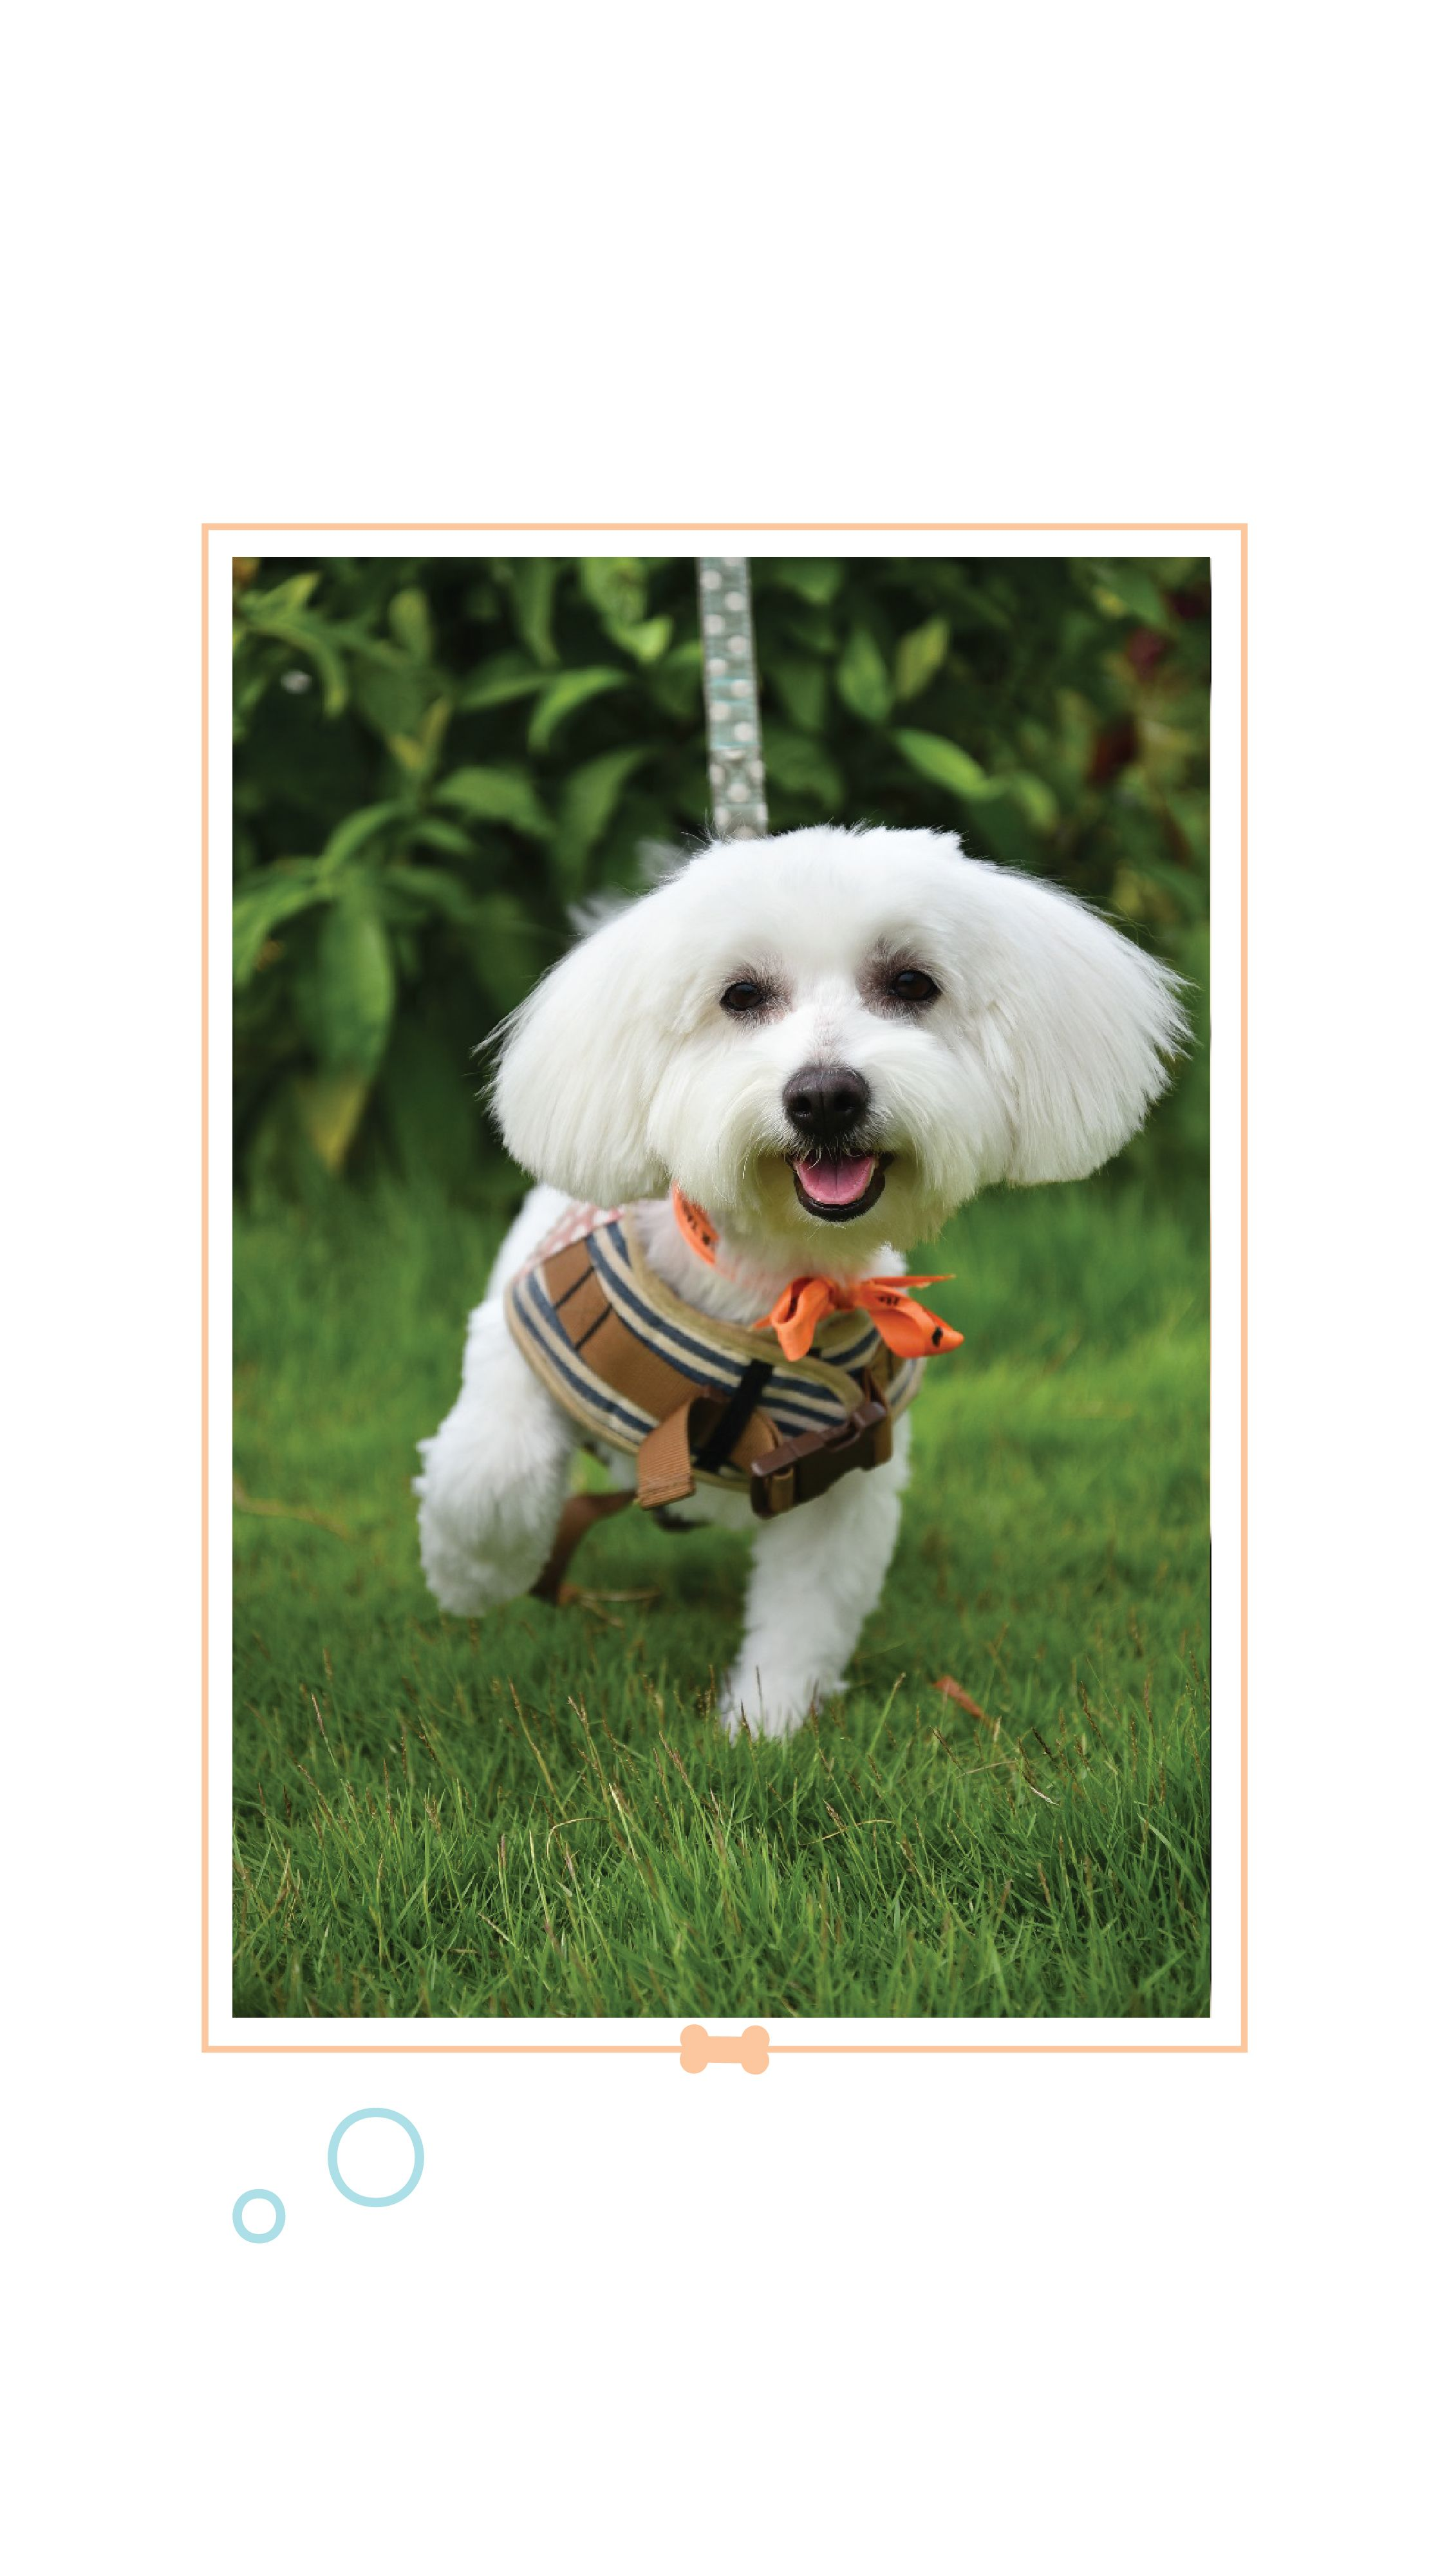 Spa For Dogs Headsupfortails Buy Pets Online Pet Supplies Dogs